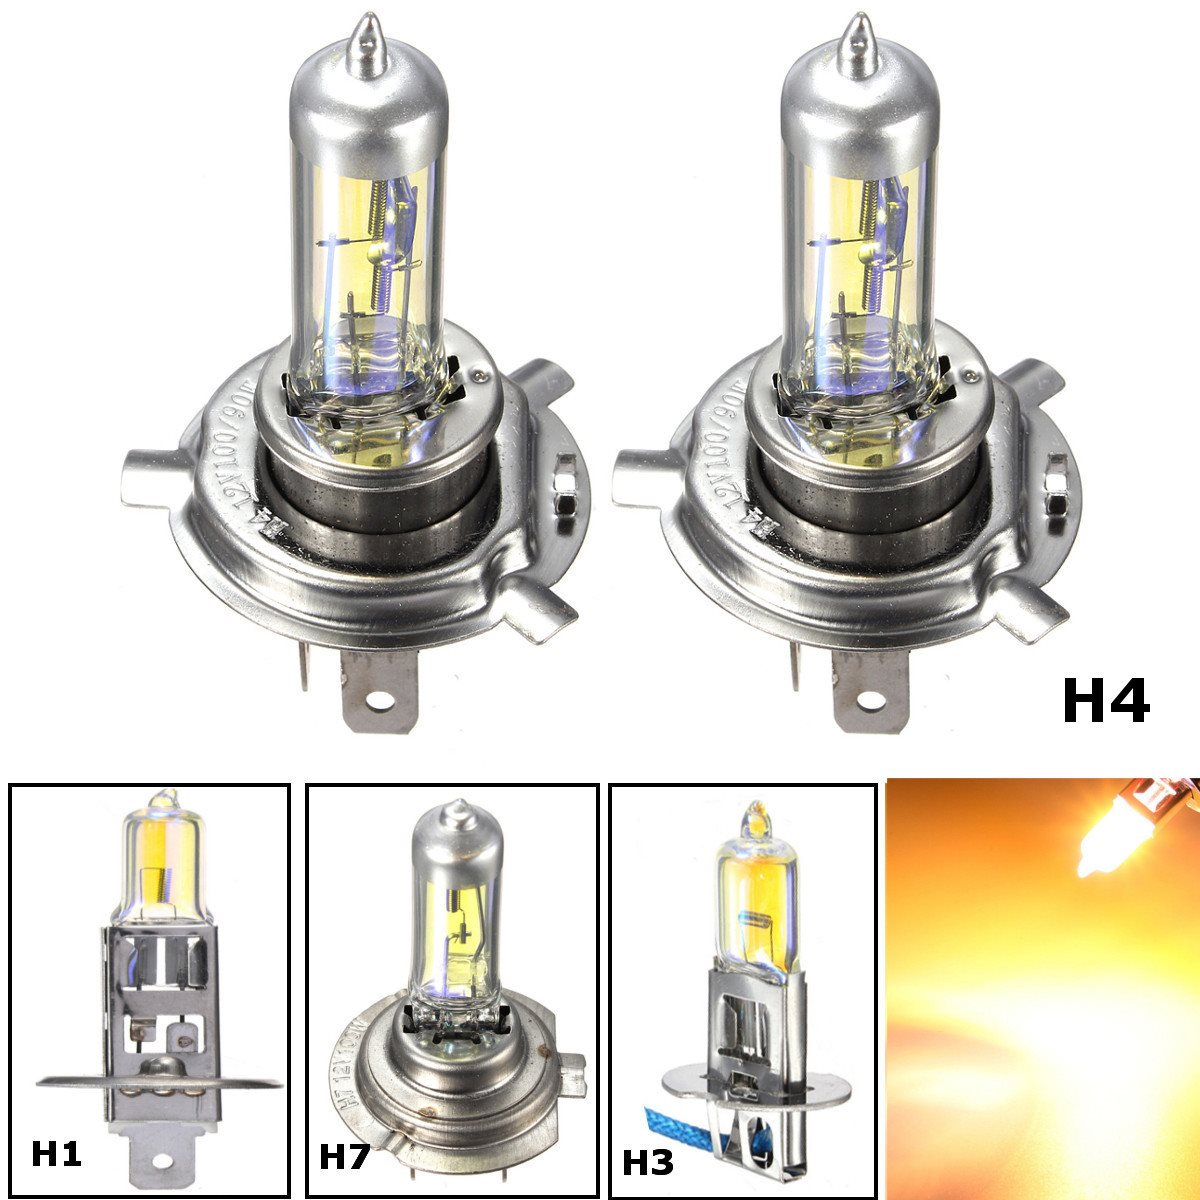 h1 h3 h4 h7 55w yellow led car light halogen lamp bulb car styling headlight lamp xenon fog. Black Bedroom Furniture Sets. Home Design Ideas